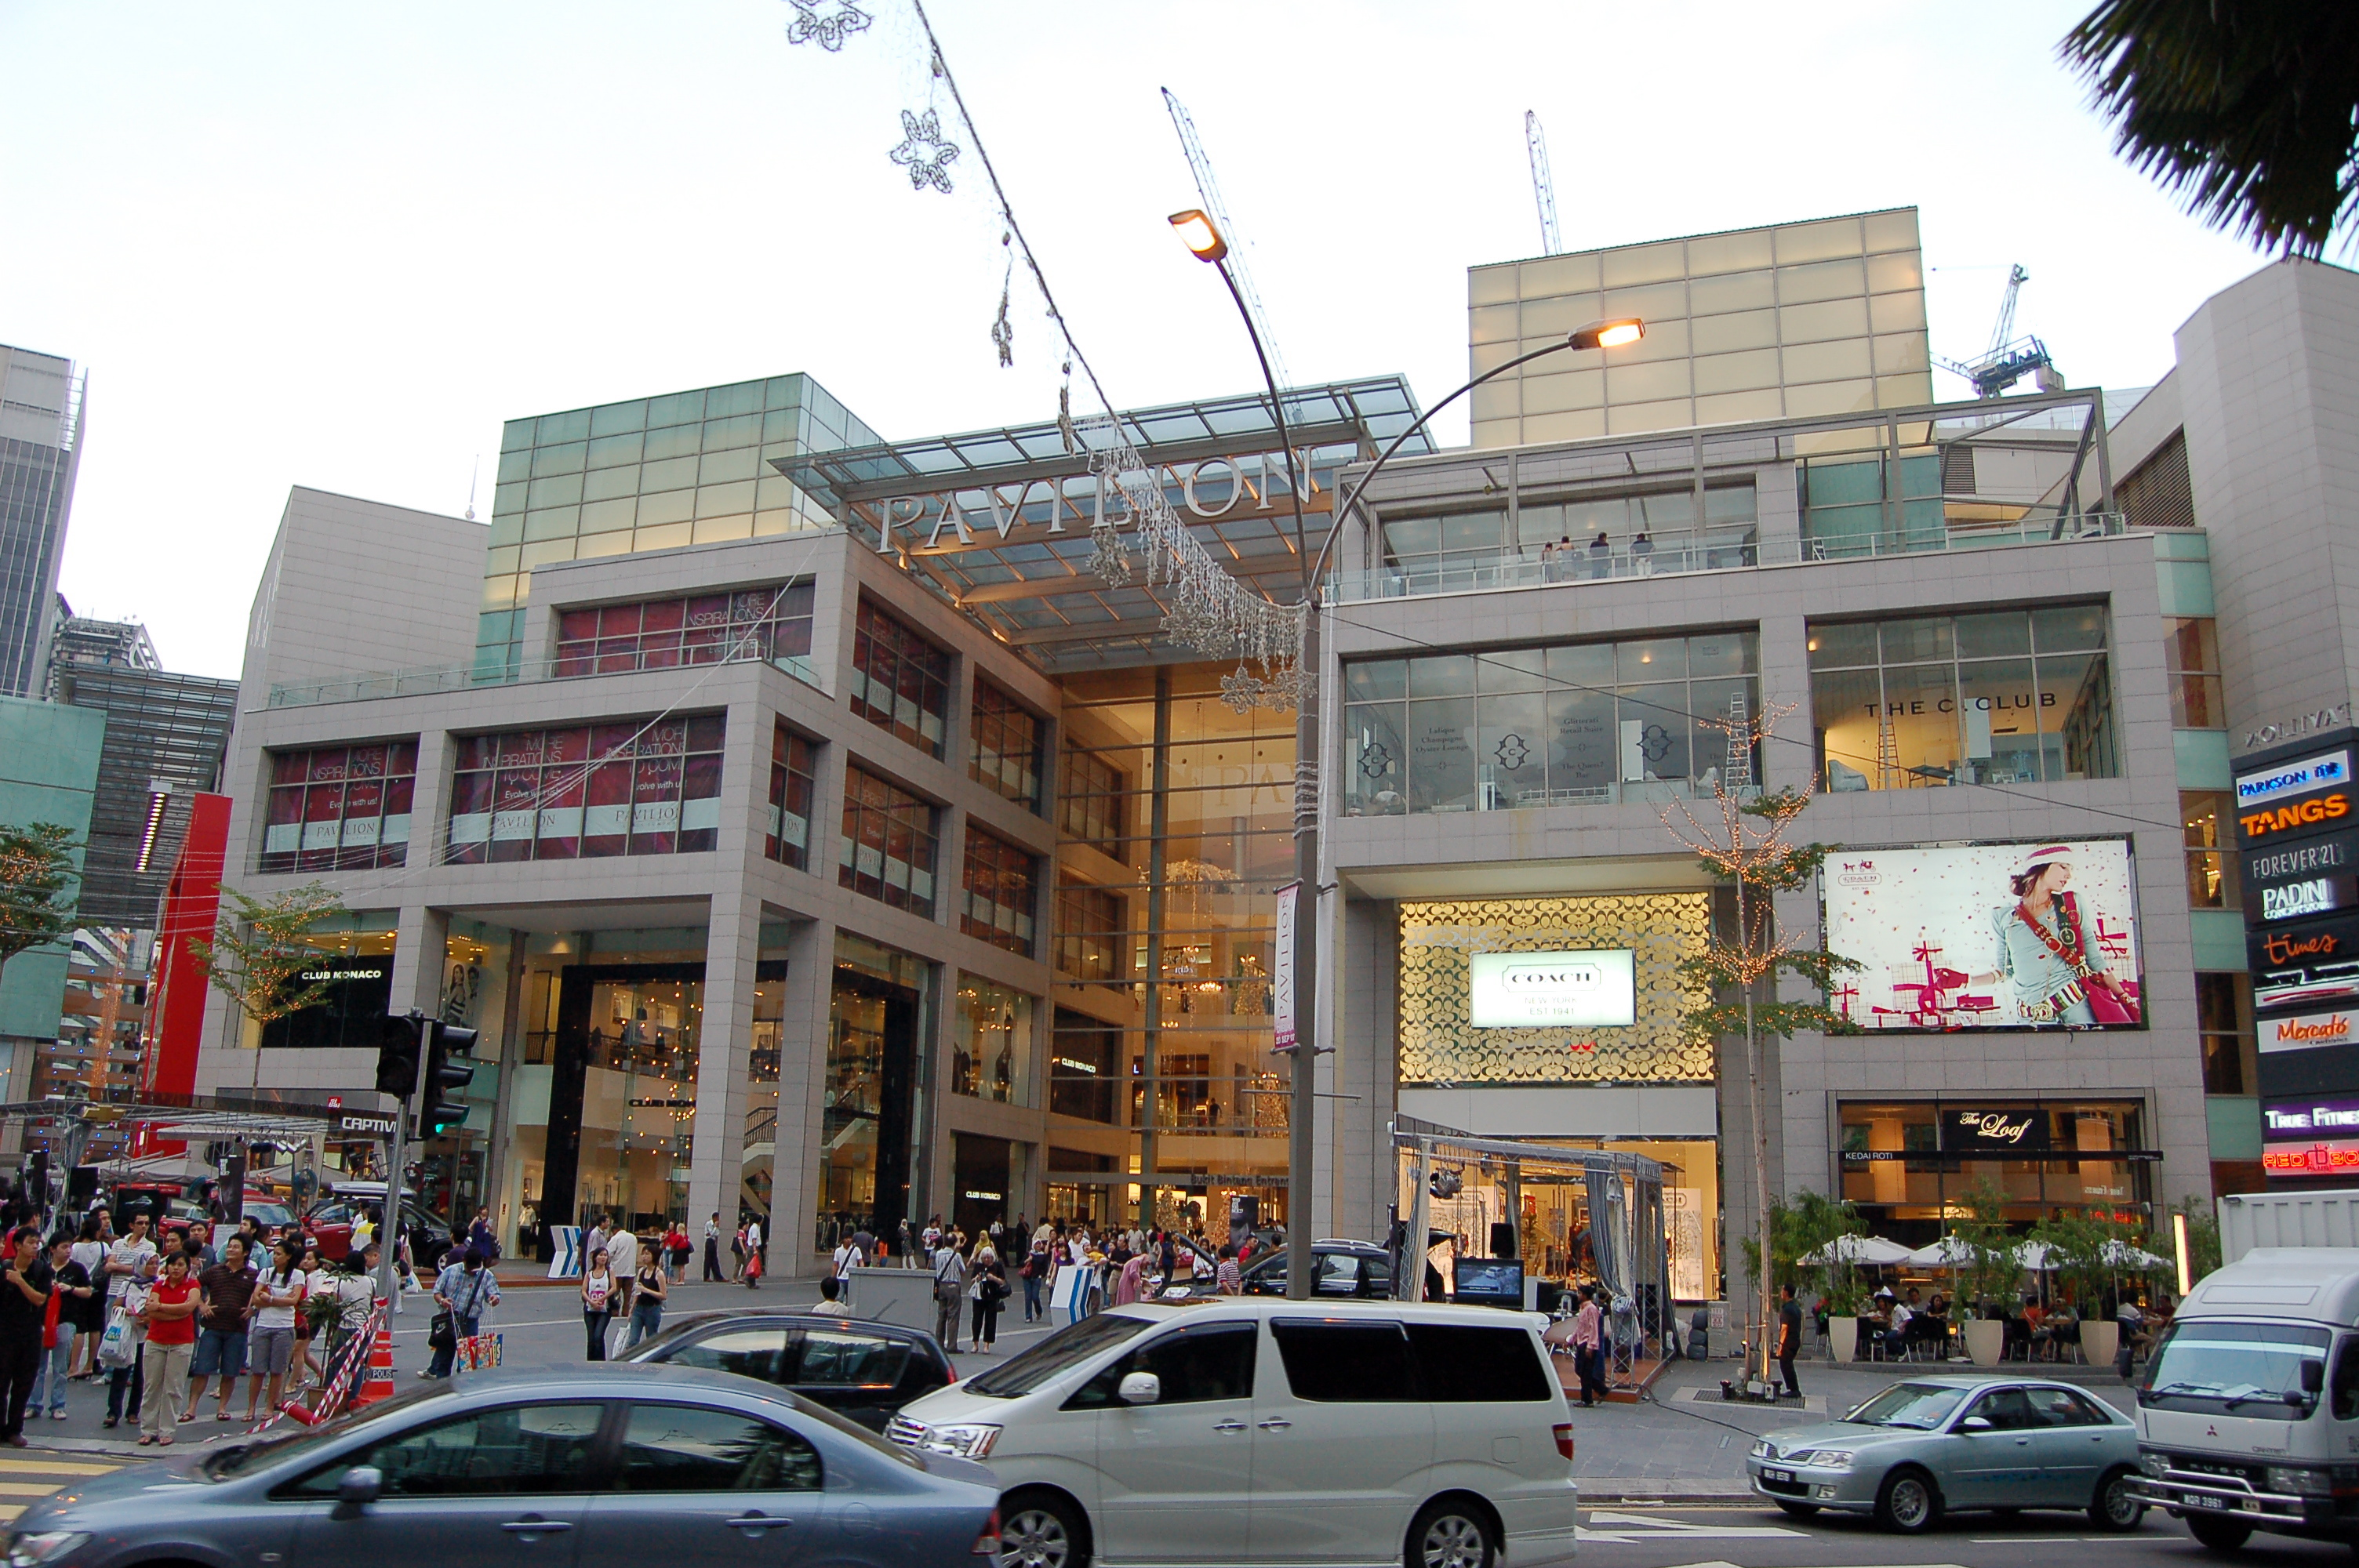 Pavilion shopping mall.